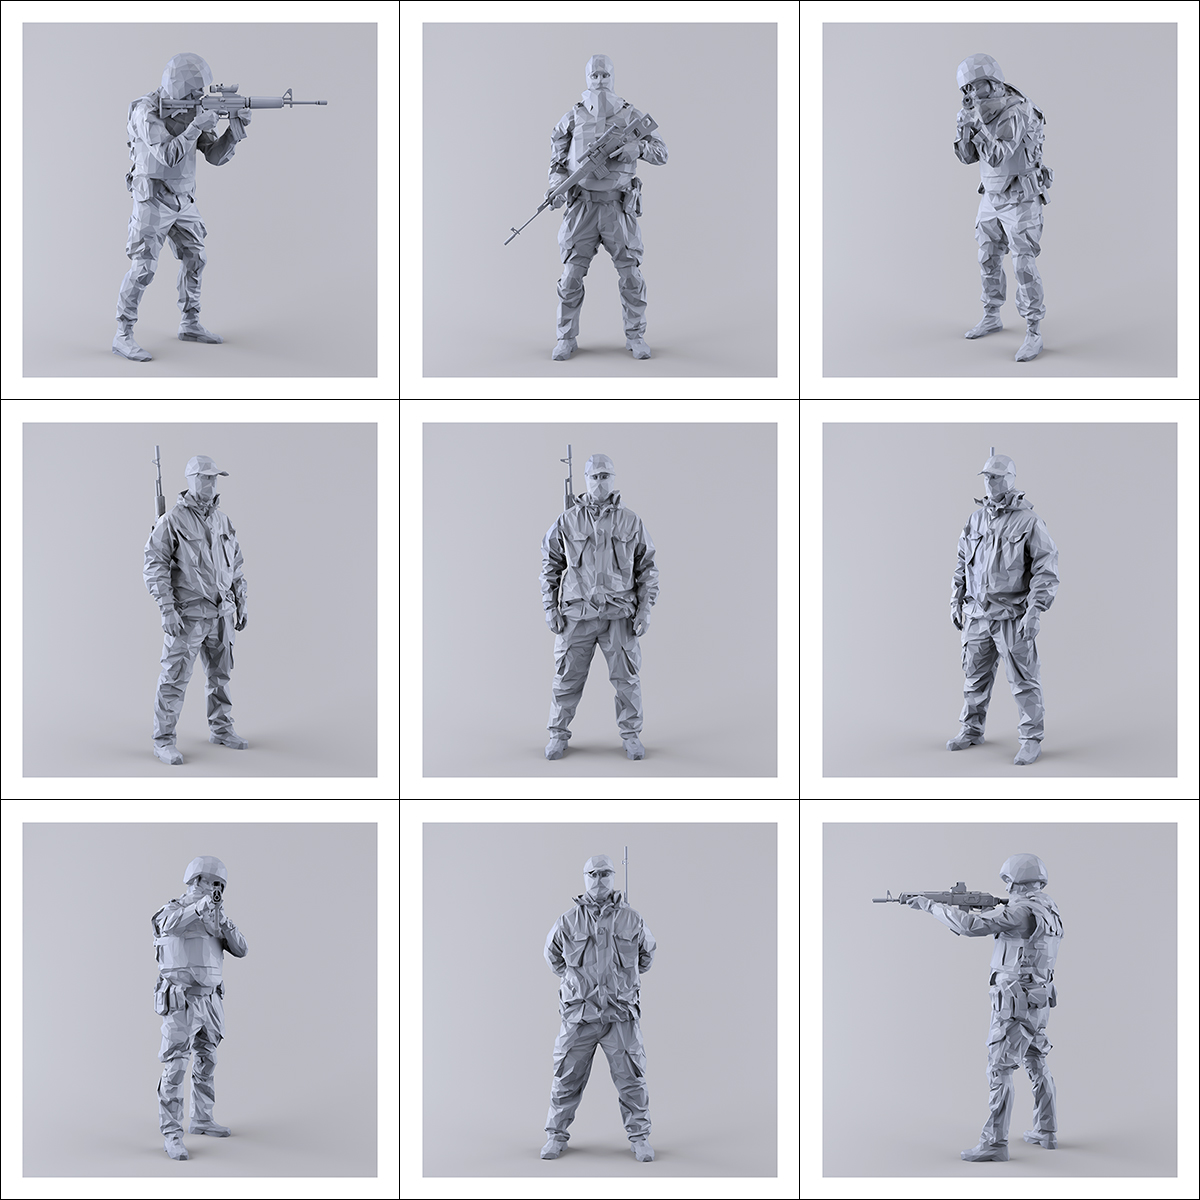 This was HomoSapiens I MM 000 1 - 2019 - This was HomoSapiens. I. (LowPoly Military Men)